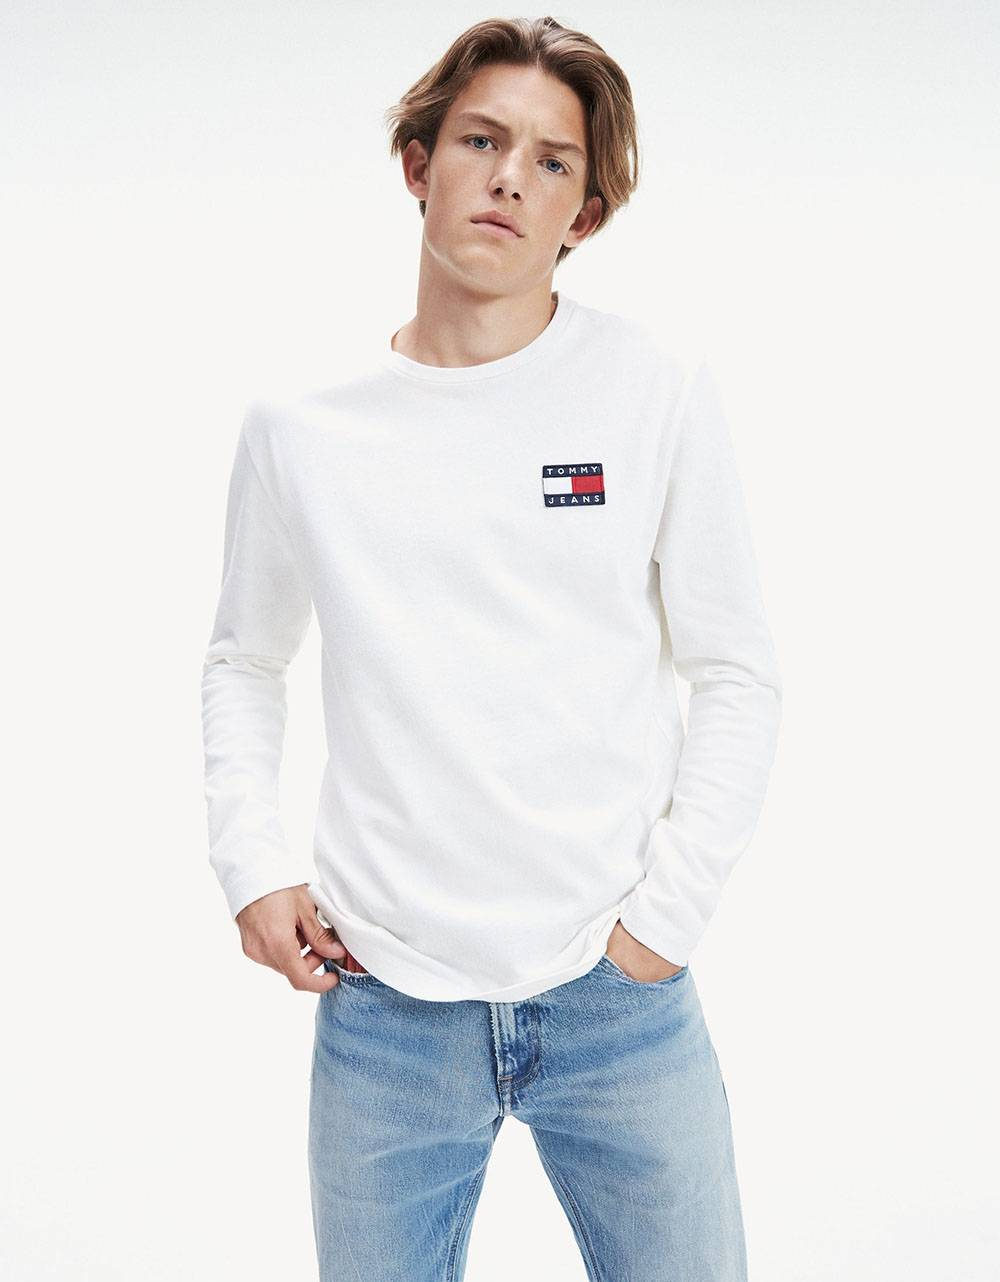 Tommy Jeans Badge Longsleeve - White Tommy Jeans T-shirt 48,36 €